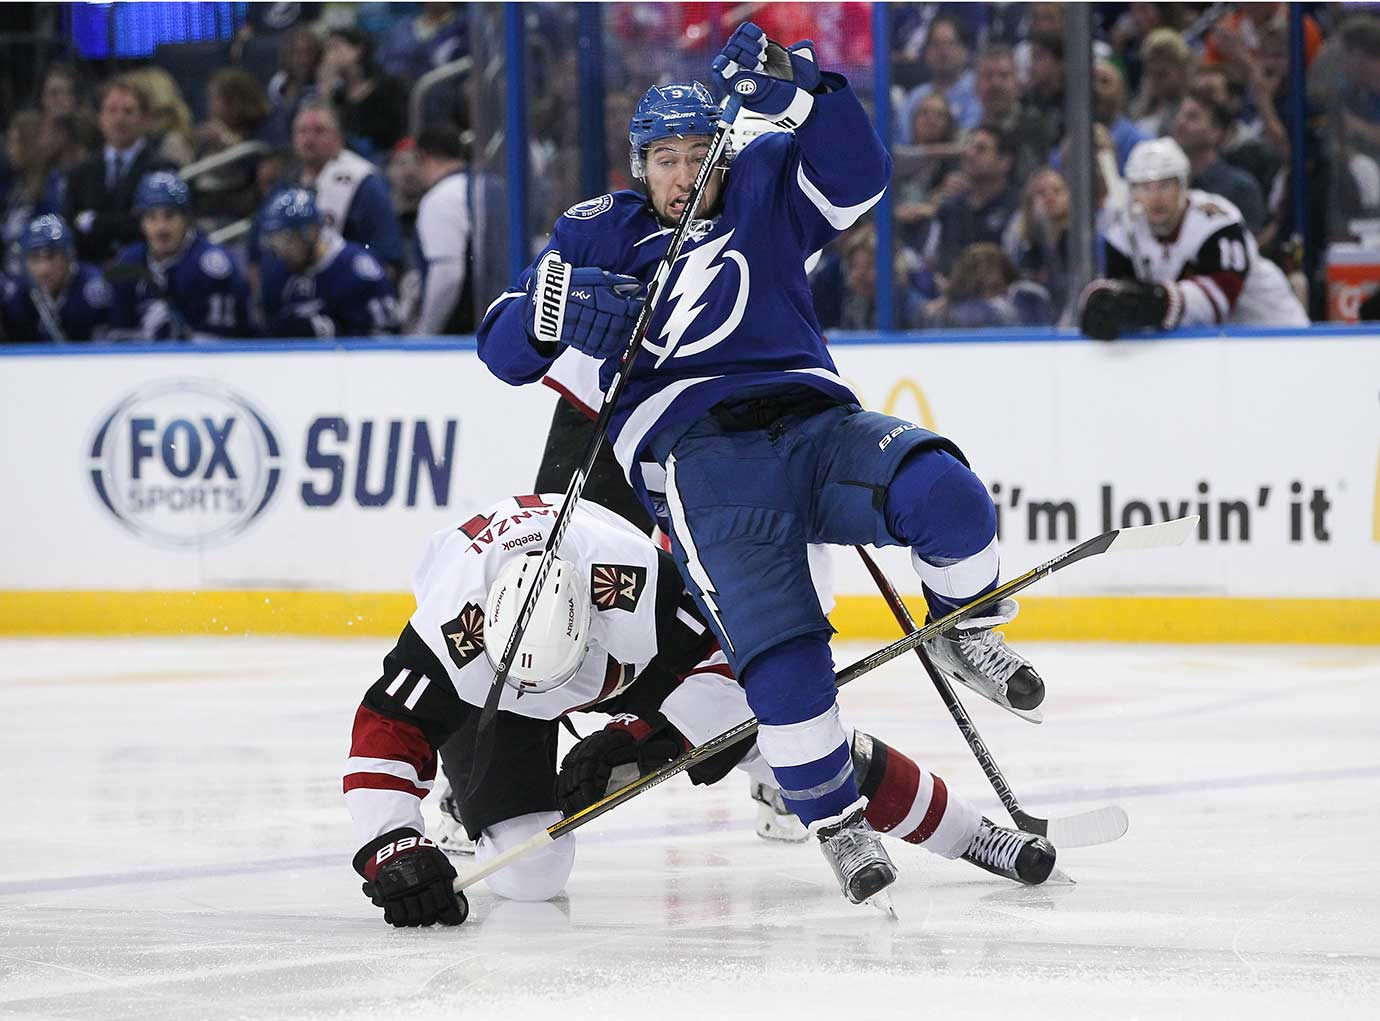 Tampa Bay Lightning center Tyler Johnson draws a penalty for embellishment as he is tripped by Arizona Coyotes center Martin Hanzal.